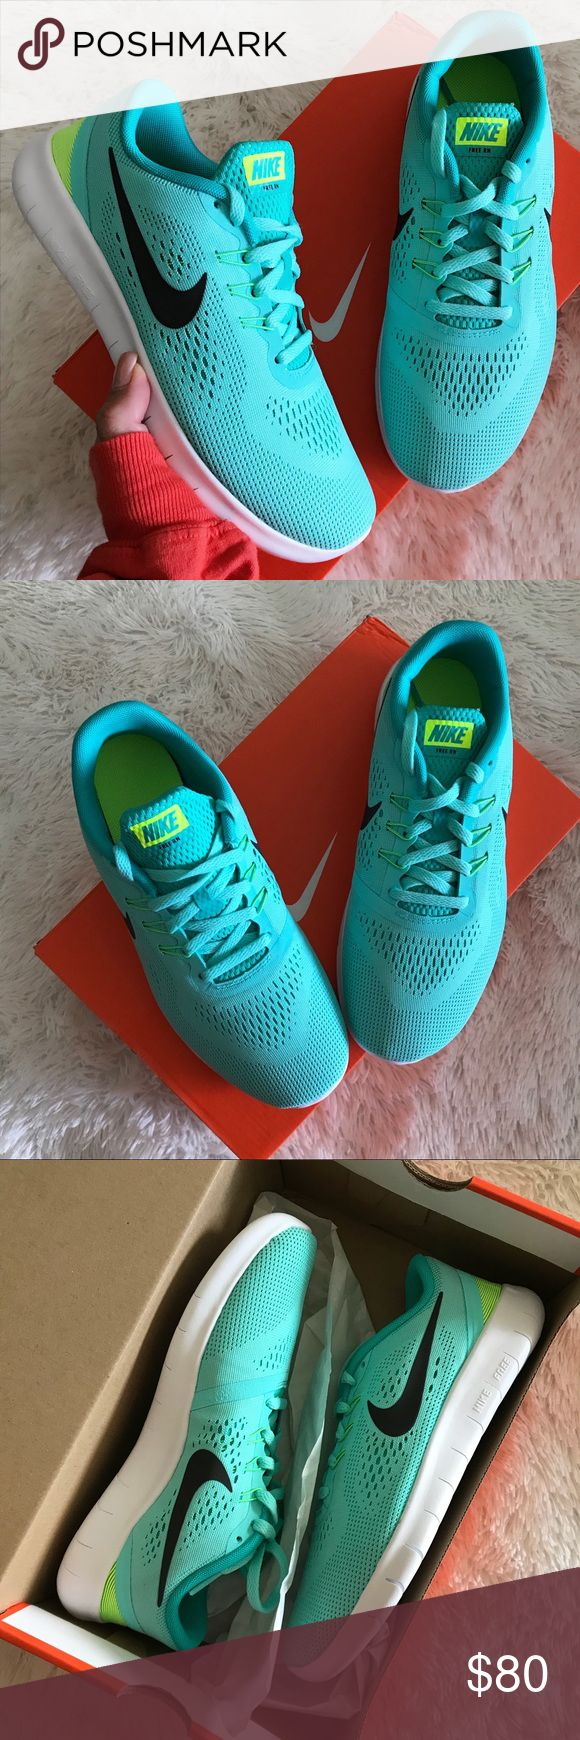 NWB 💠 NIKE FREE | TIFFANY BLUE BRAND NEW, NIKE FREE! Super cute, cozy & comfy NIKES | LUXURIOUS TIFFANY COLOR! ✨💠  FULL ORIGINAL BOX. THE PERFECT GIFT! 🎁  ORDER YOUR WOMANS SHOE SIZE 6 youth = 7.5 WOMEN 6.5 youth = 8 WOMEN  ALL SIZES LISTED ACCORDING TO NIKE'S SIZE CHART. PLEASE KNOW YOUR YOUTH SIZE PRIOR TO PURCHASING. ✨💠  Ships same or next day from my smoke free home.   PRICED FIRM, offers will be considered through the offer button only. Bundle to save. ✨ 💠  100% authentic & direct…